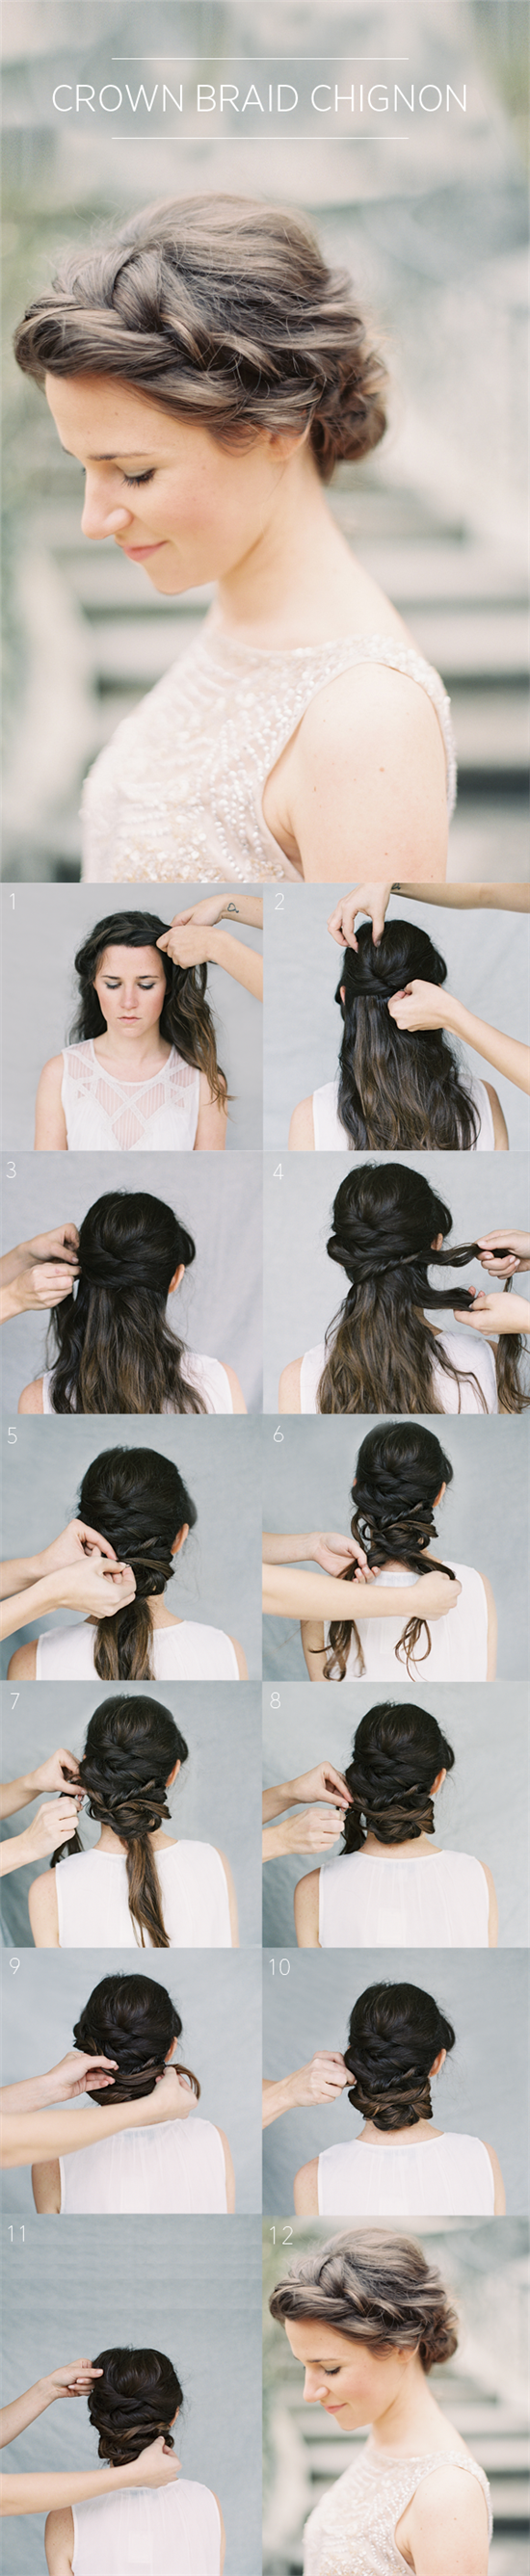 Try Elegant Updo Hairstyles with Hair Extensions in Weddings | New ...